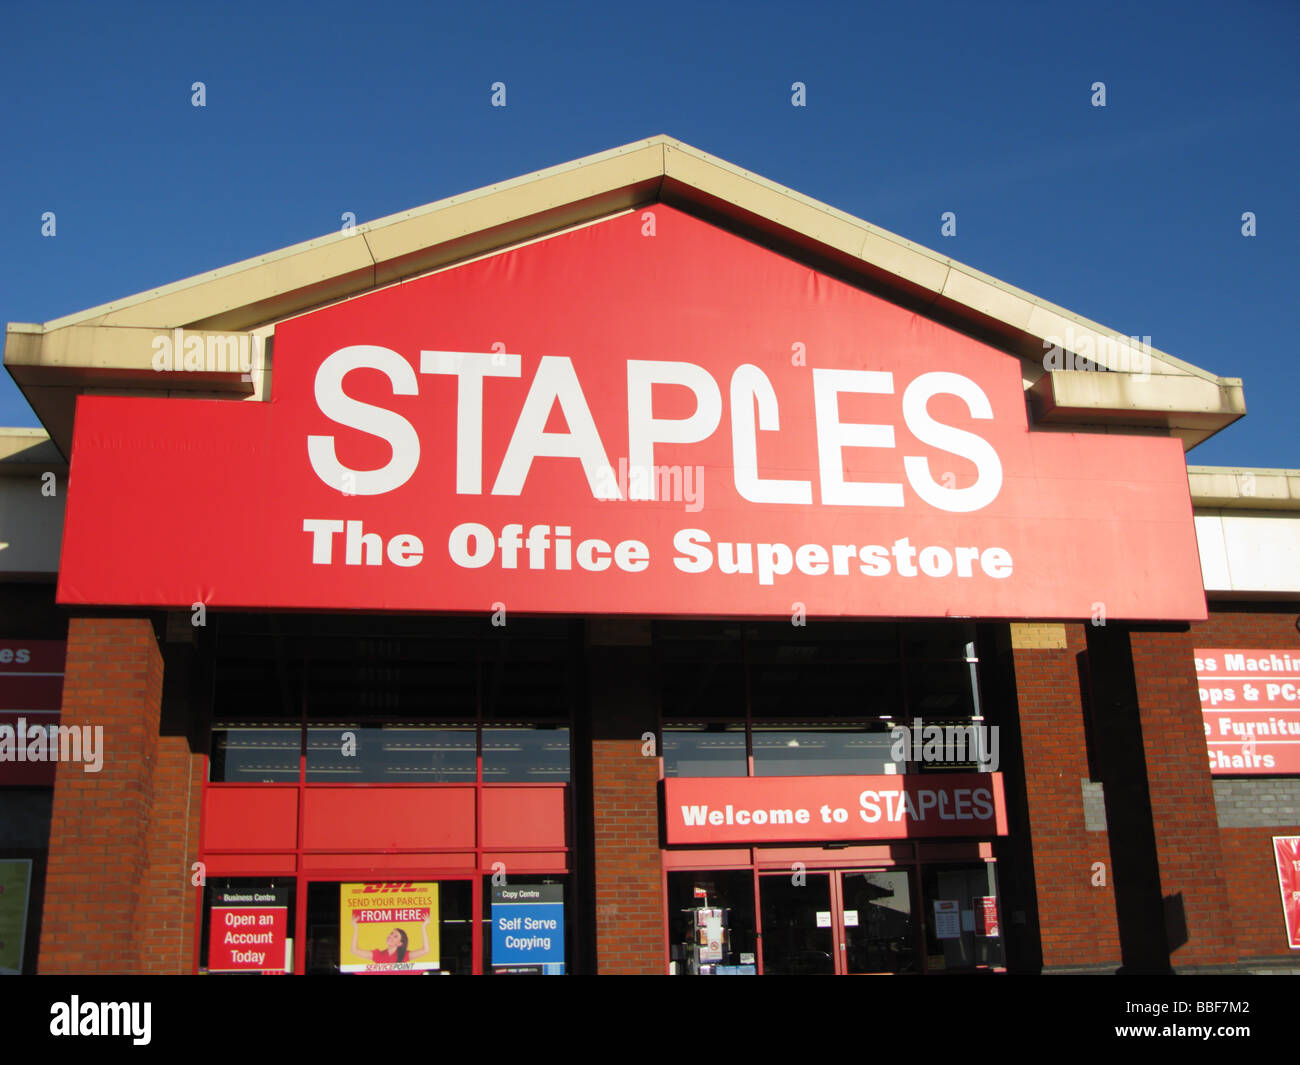 What Time Does Staples Open Today >> Staples Office Store Superstore At Marsh Barton Retail Park